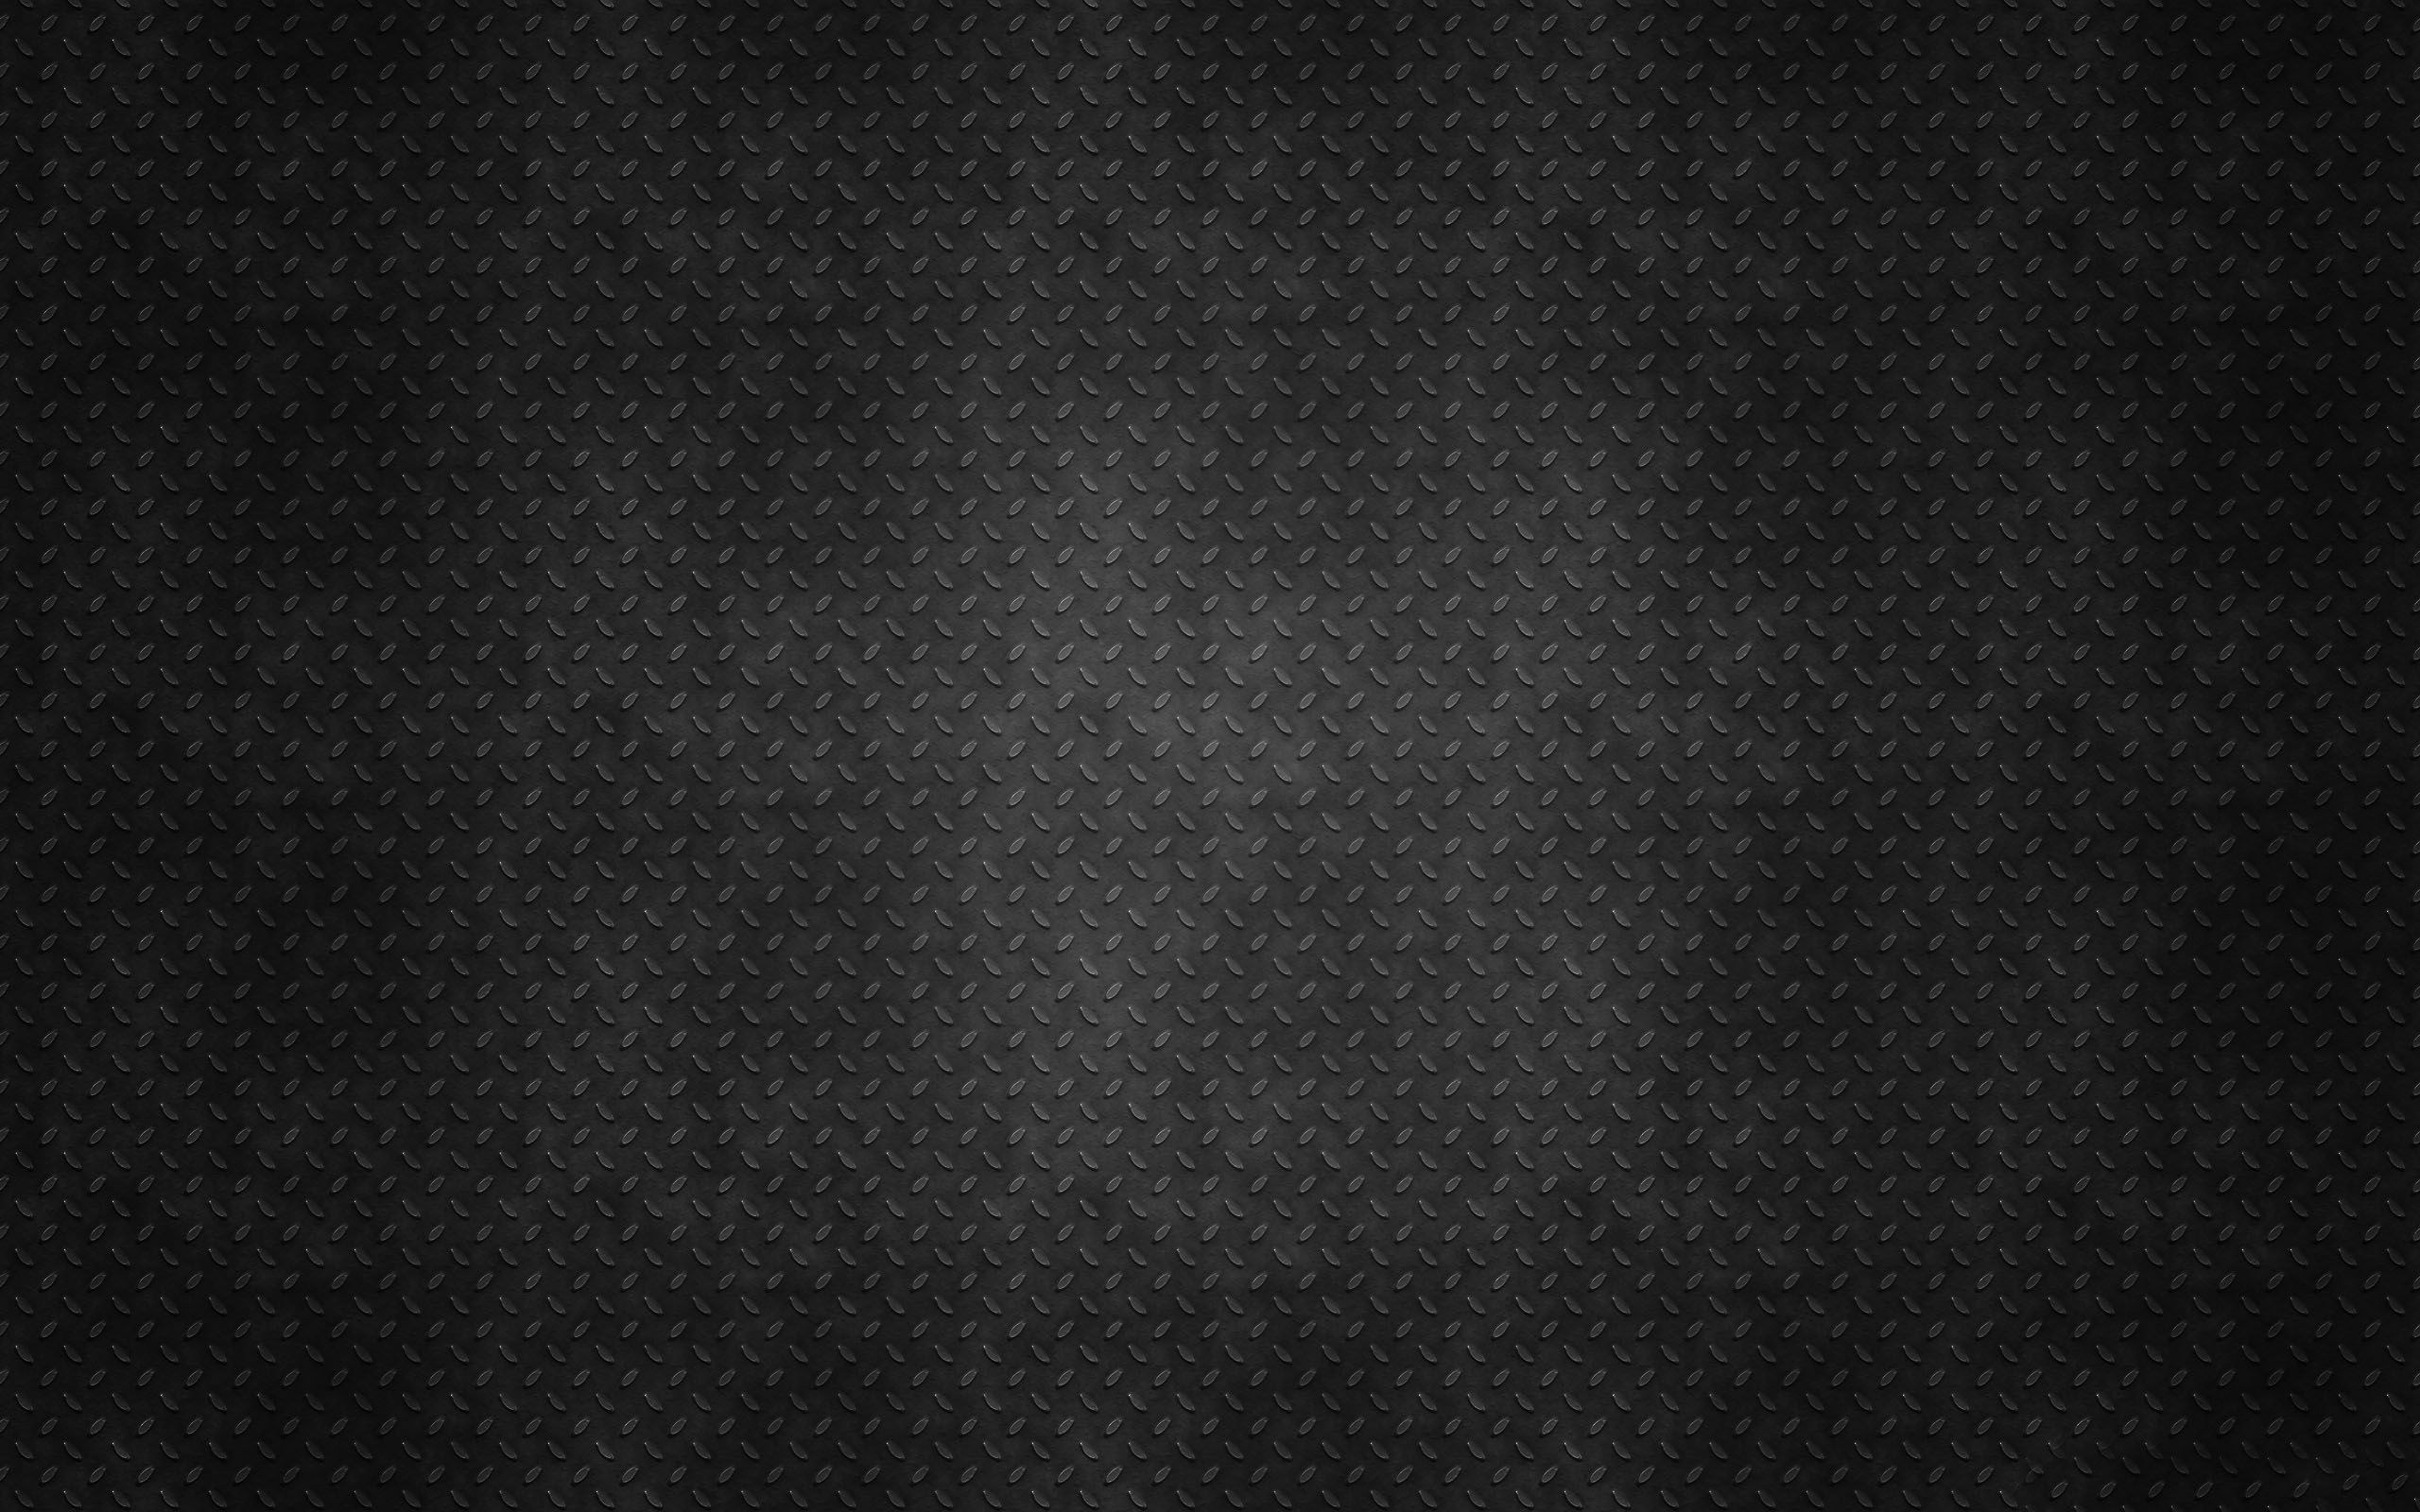 Black HD Wallpaper Background Color